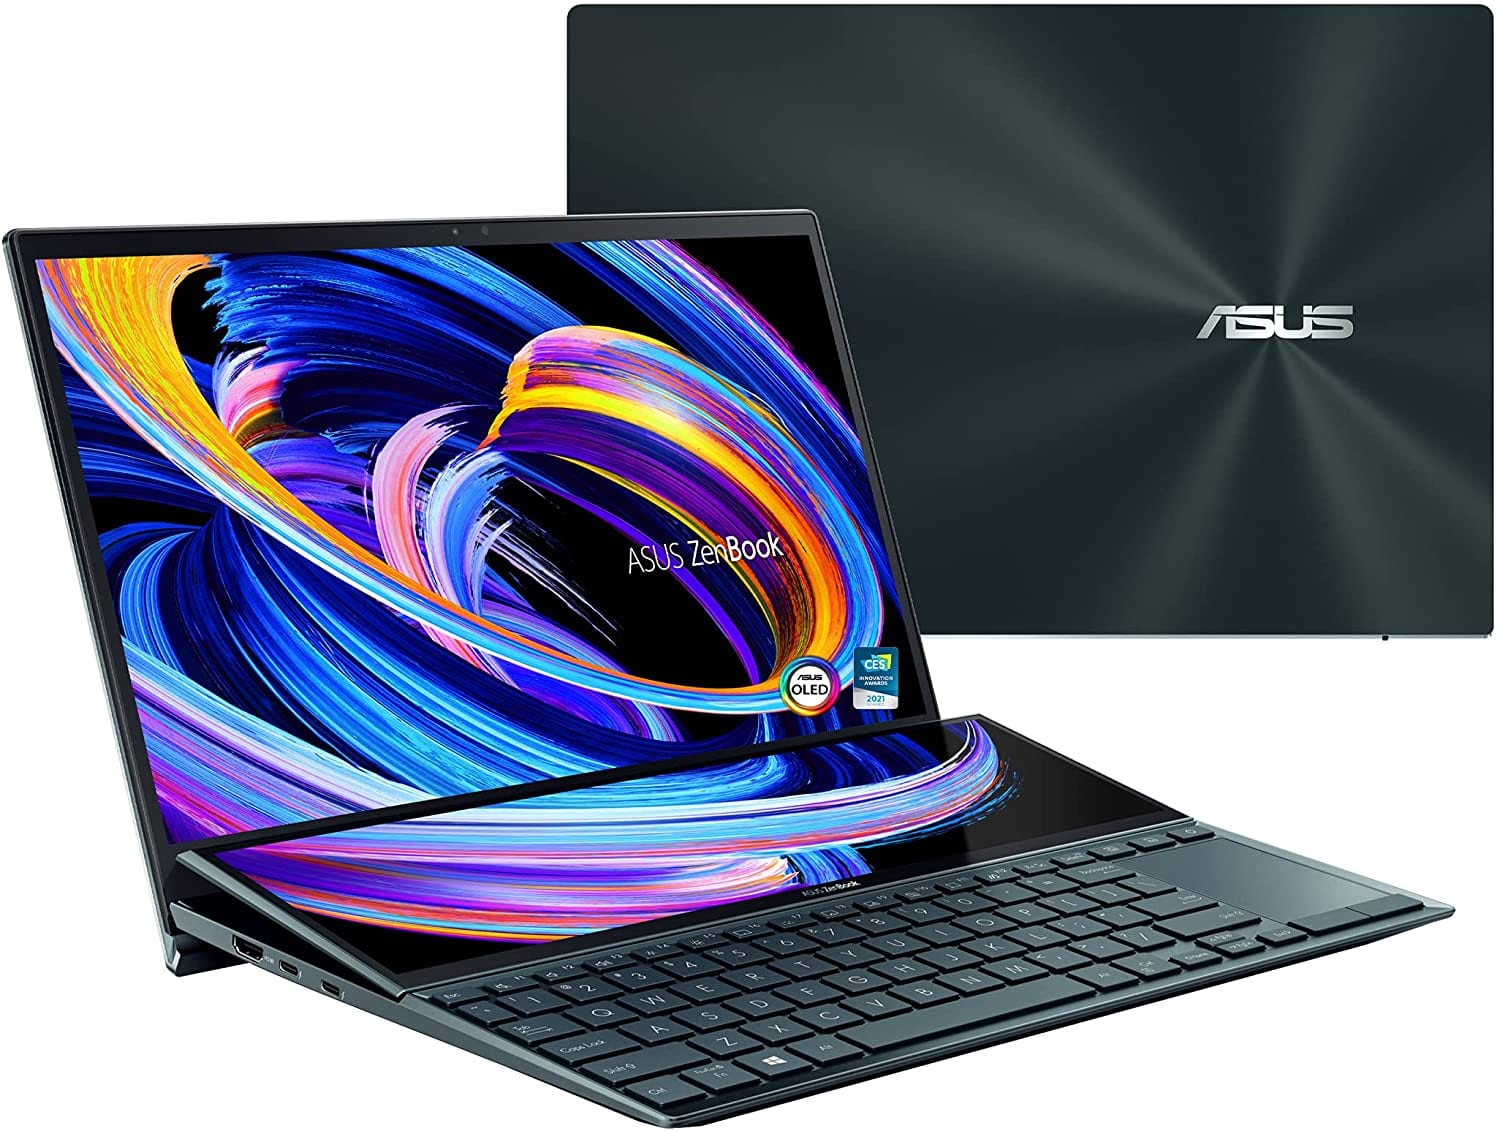 Asus Zenbook Pro Duo UX581: One of the best Windows laptops for music.